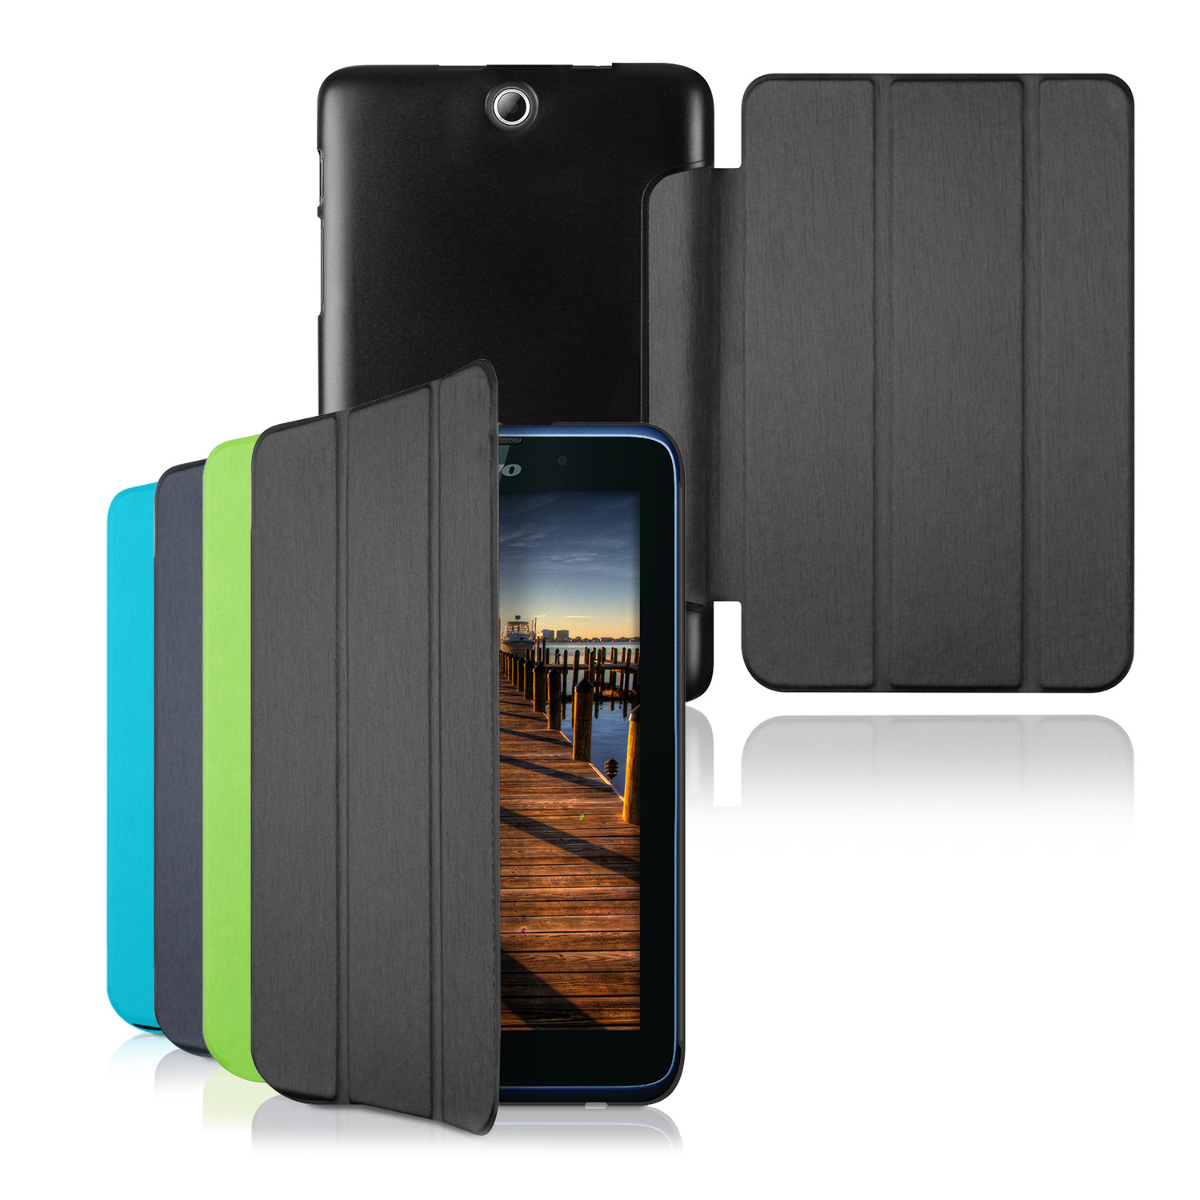 Capa Smart Cover LENOVO IDEATAB A7-50 (A3500)